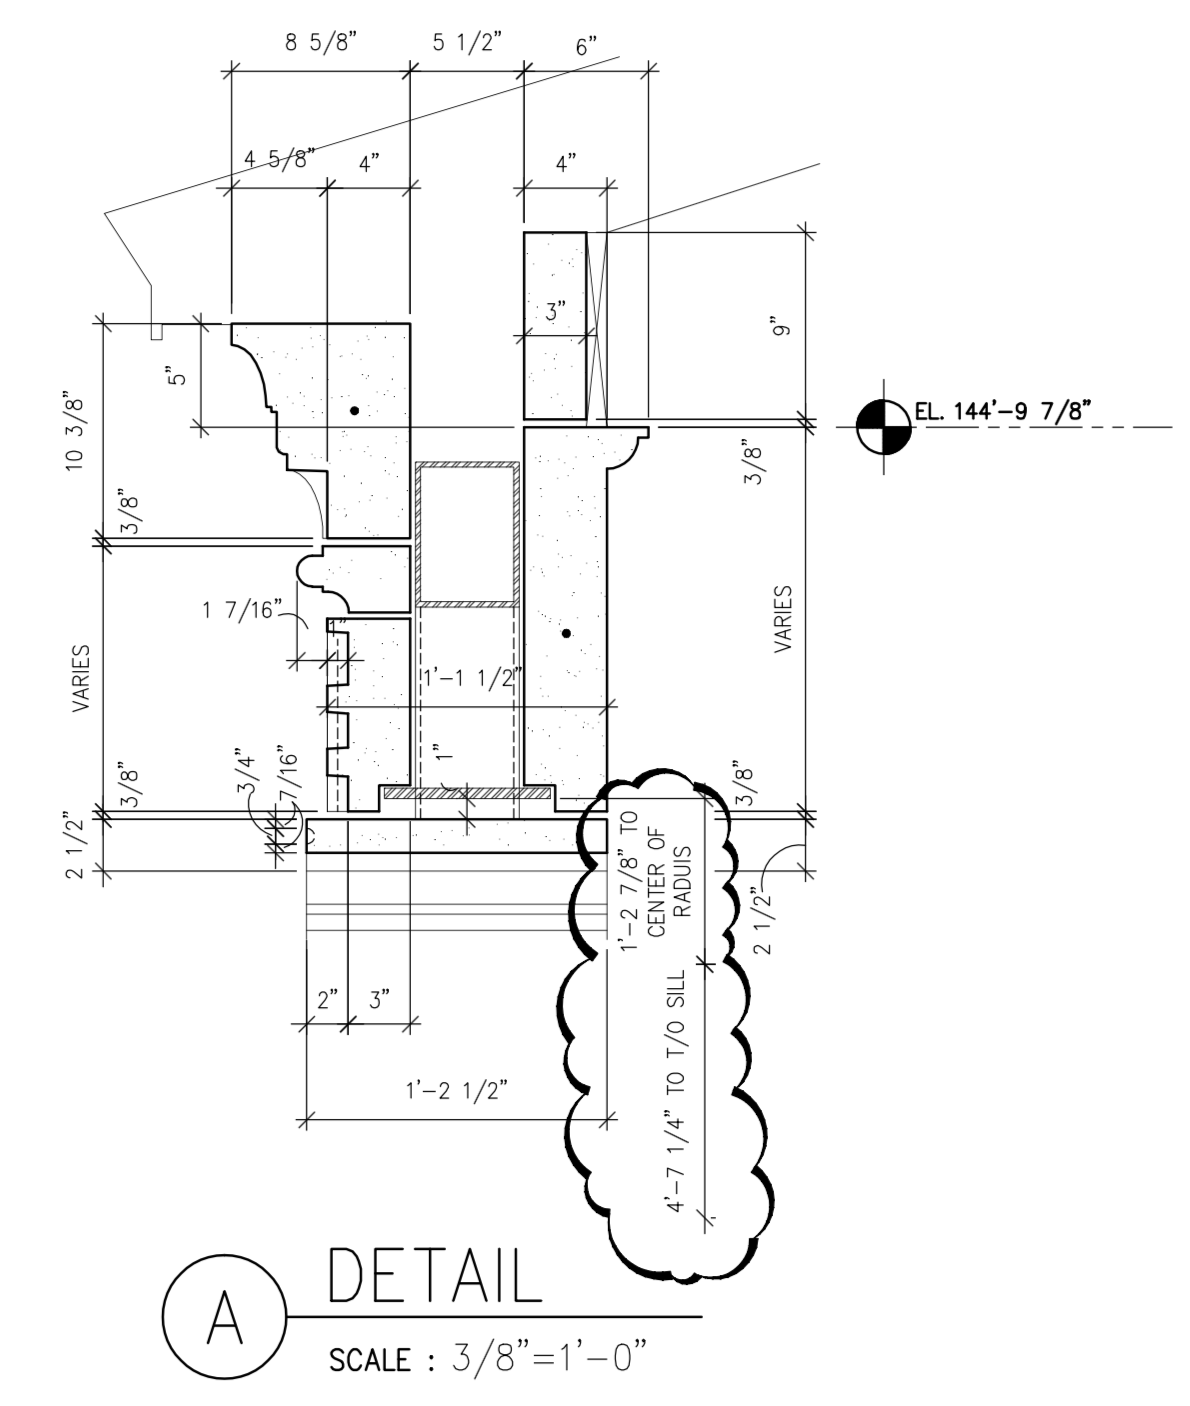 Shop Drawing - Details for Support, Anchorage, Installation Connections